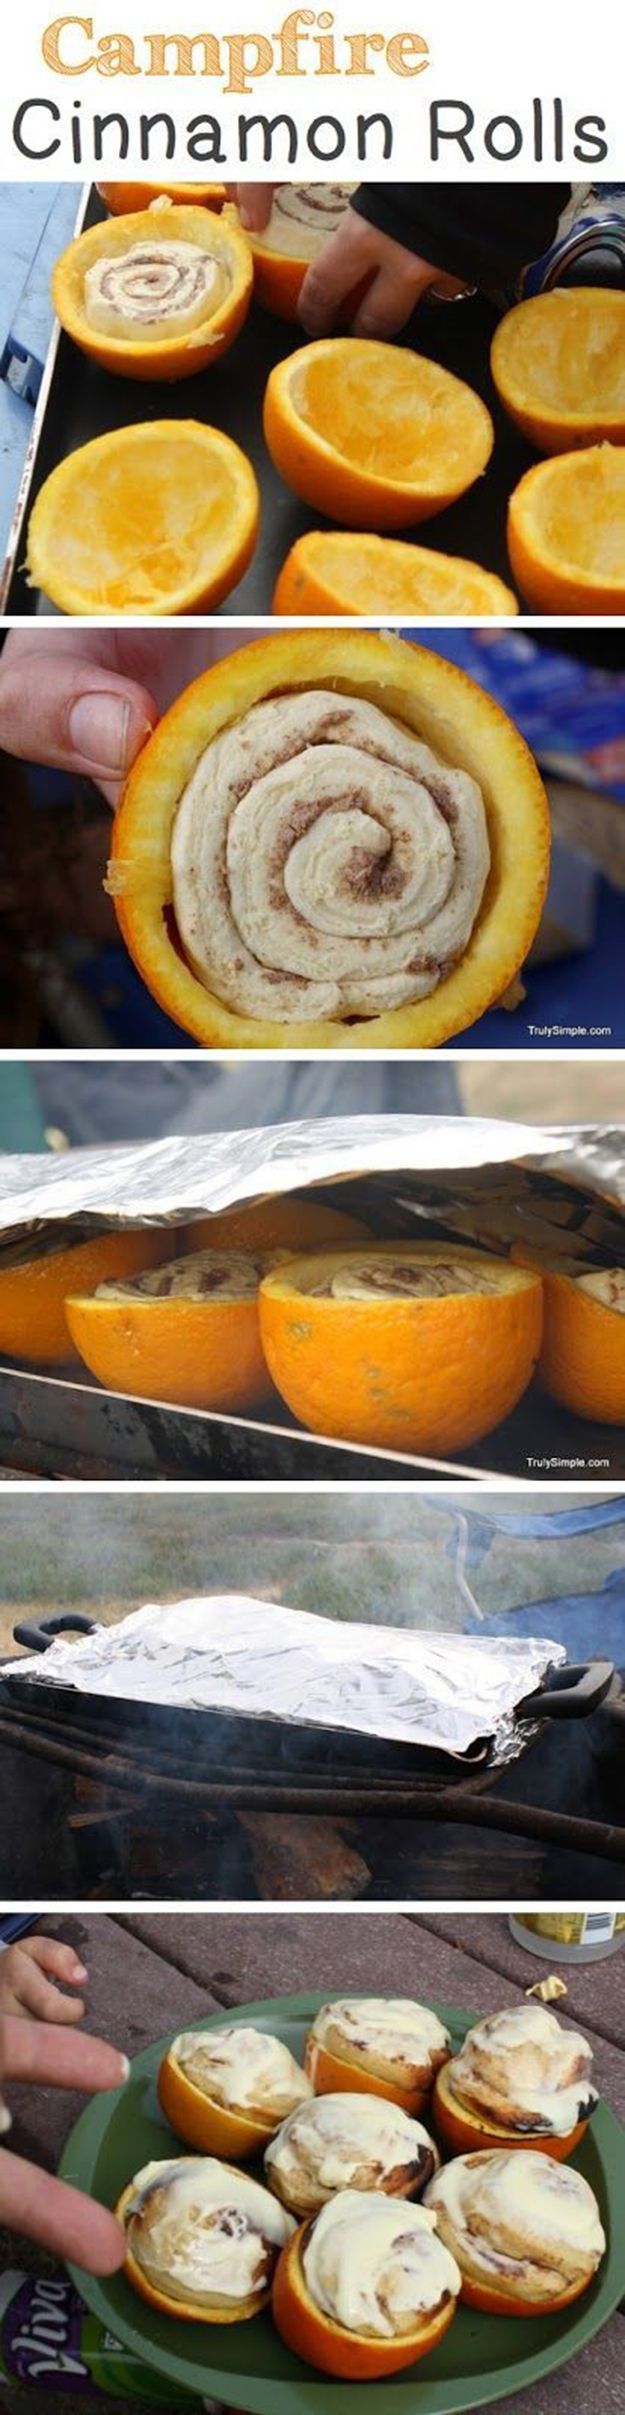 Campfire Cinnamon Rolls | Homemade Recipes for Camping Food - the are the best cinnamon rolls ever! #diyready http://diyready.com/18-mouthwatering-breakfast-recipes-to-try-on-your-next-camping-trip/